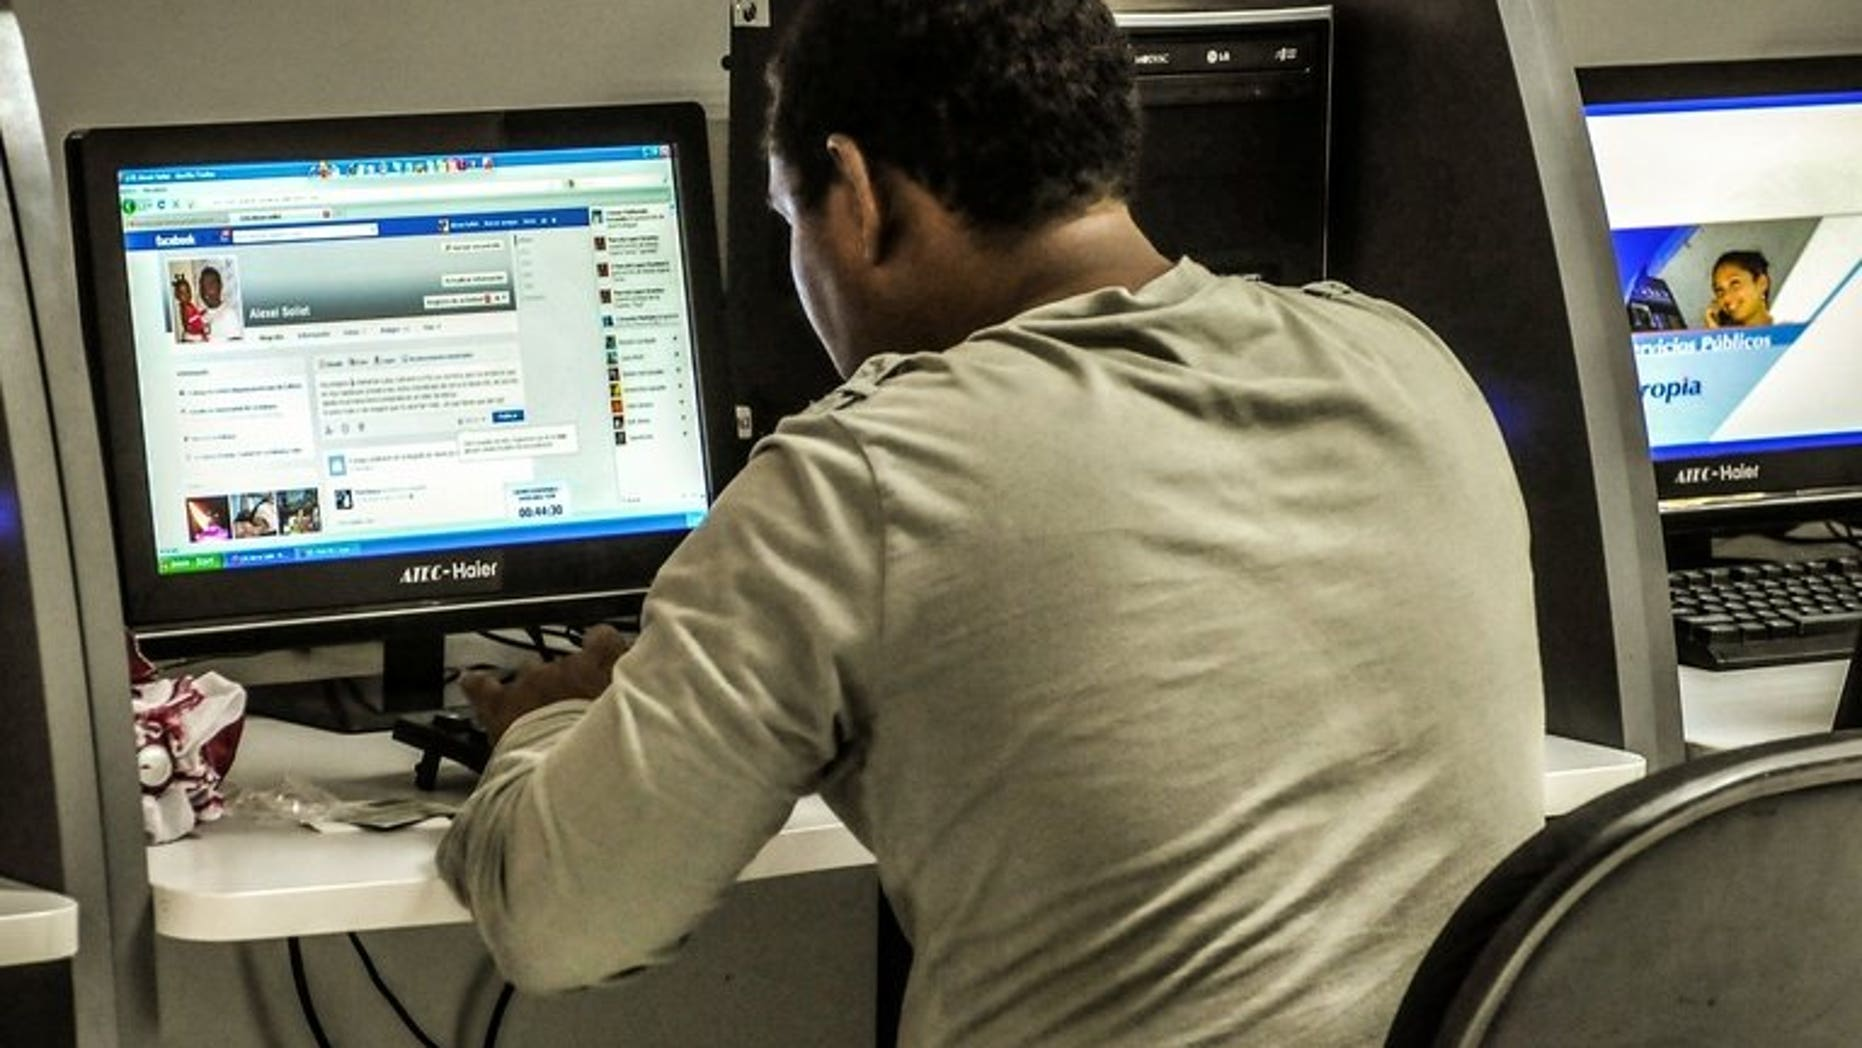 A man checks Facebook at a cyber cafe on June 4, 2013. Parents of a Canadian girl who killed herself after months of cyberbullying following a rape were sickened on Wednesday that her image was used to advertise an online dating service.